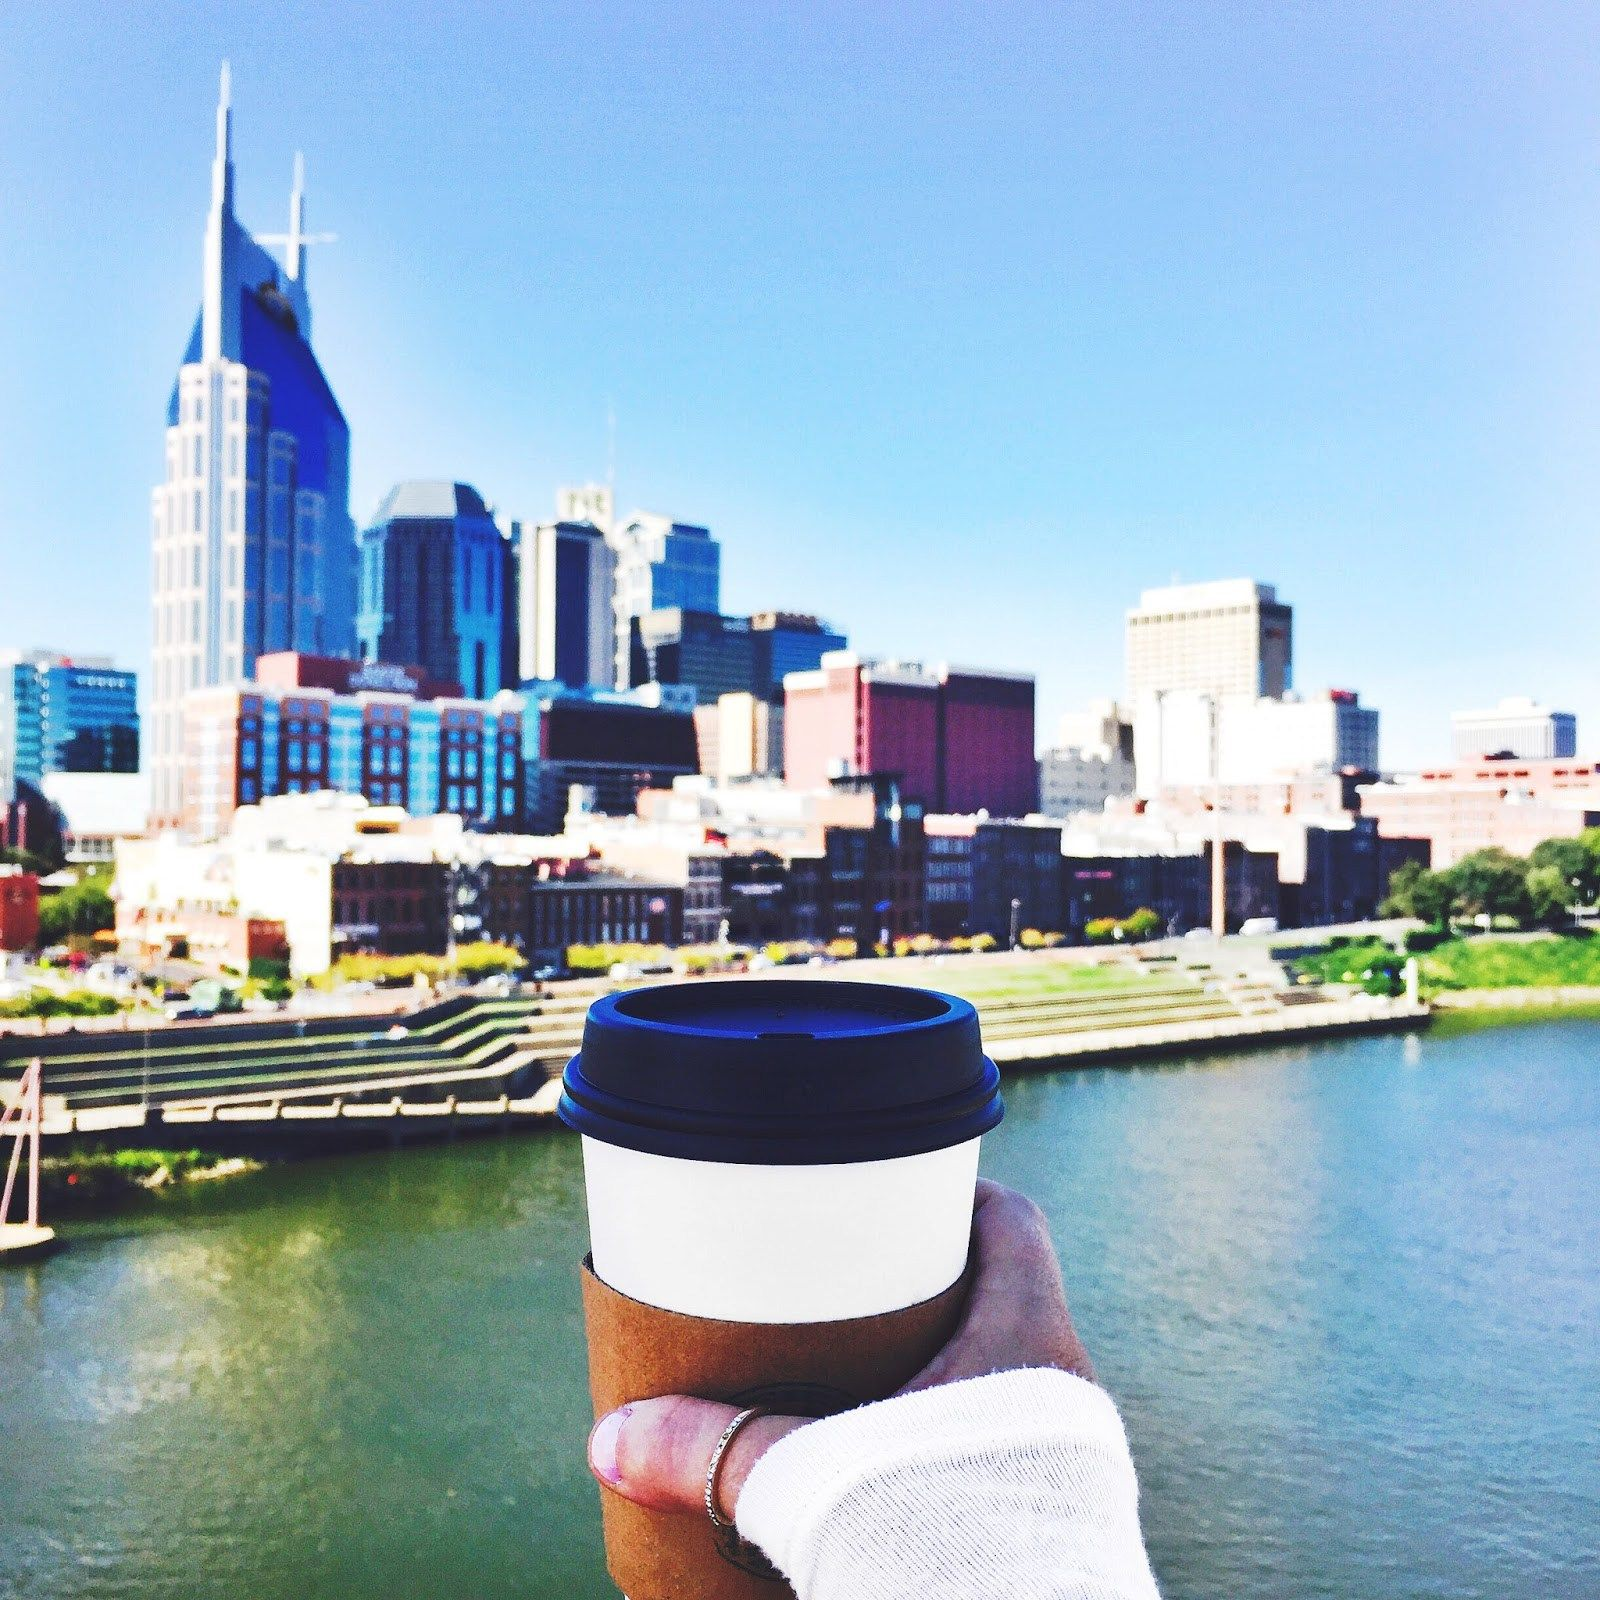 After living in Nashville (officially) for six whole months, I finally feel ready to add my two cents for planning a trip to explore the city. Nashville has absolutely stolen my heart. It's brimming with life. Of course, you have the music scene, but there's so much more, like rich history, culture and fun. My …